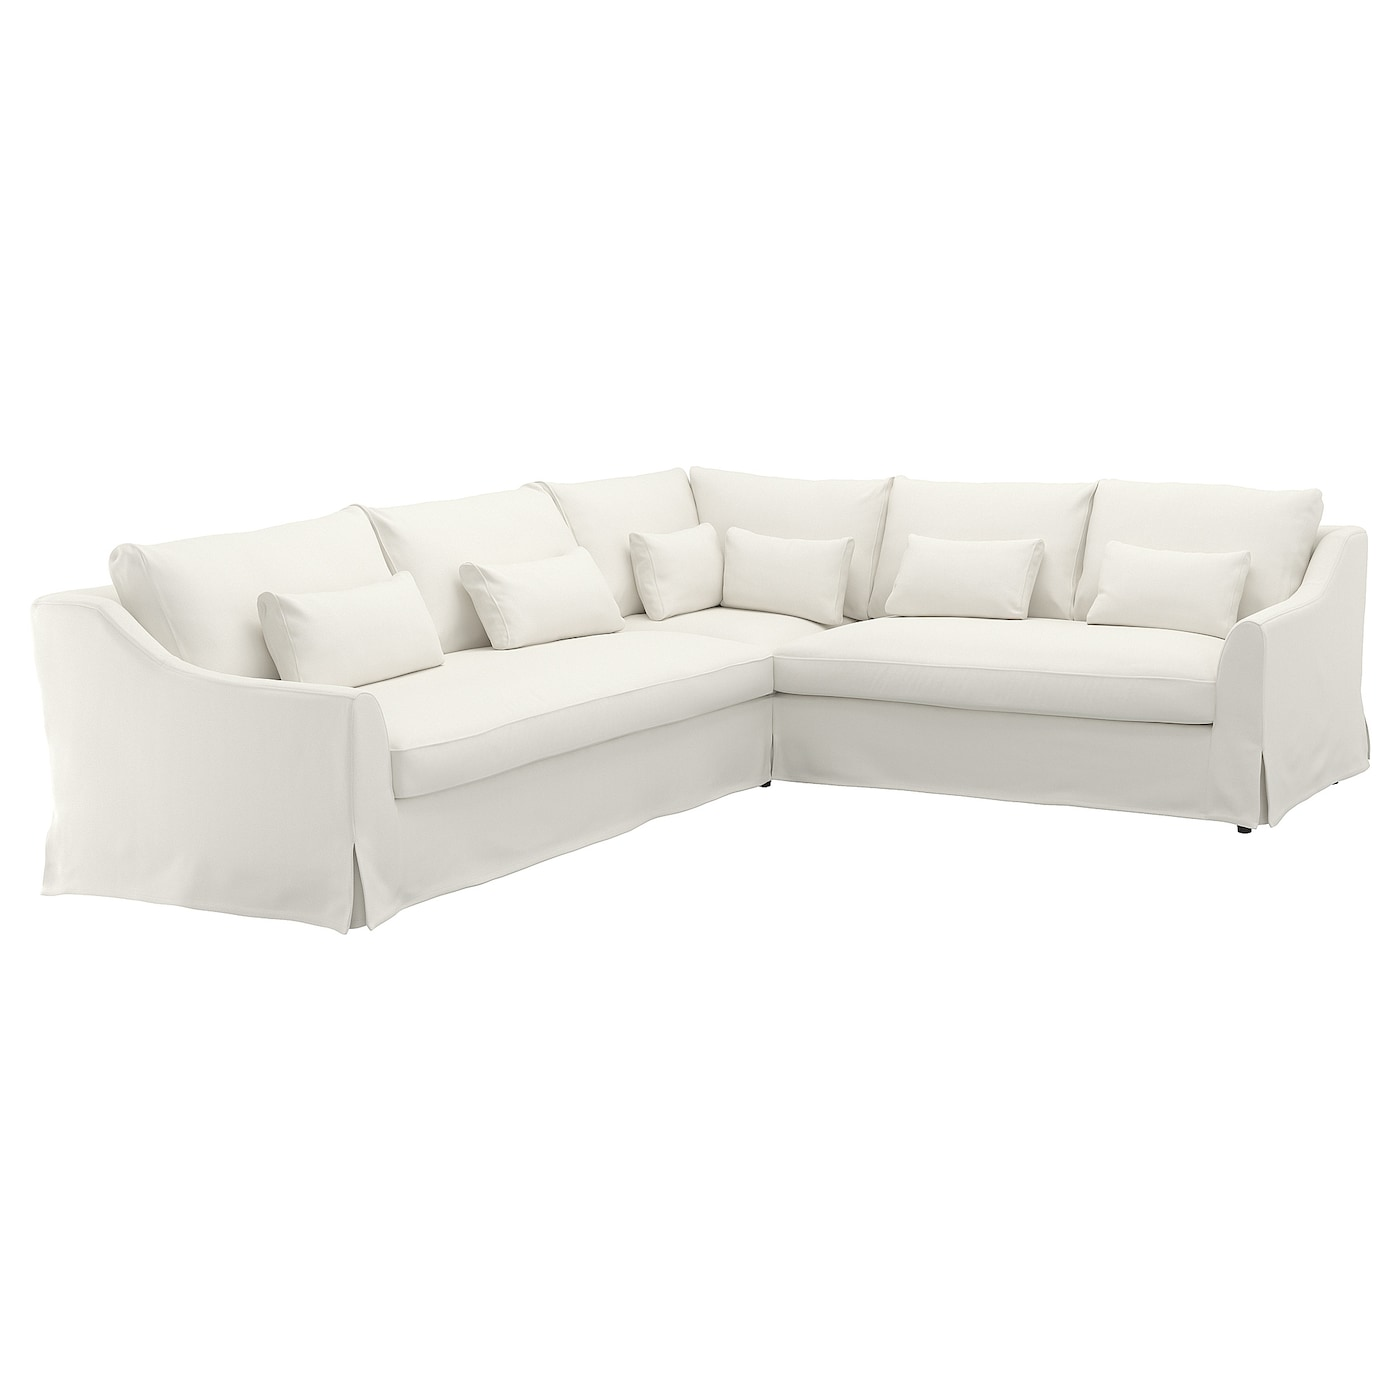 IKEA FÄRLÖV corner sofa 3+2 10 year guarantee. Read about the terms in the guarantee brochure.